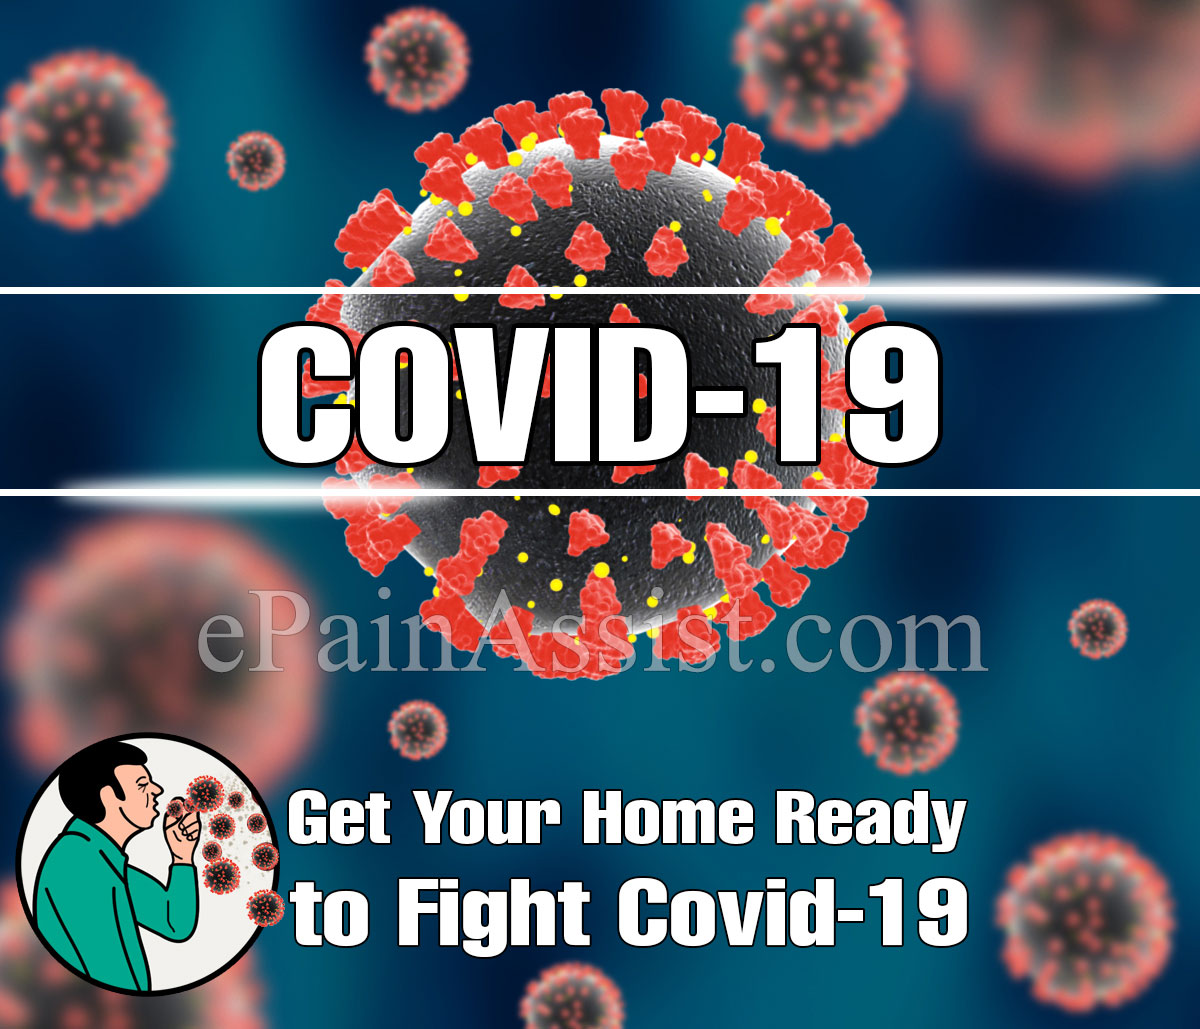 Get Your Home Ready to Fight Covid-19